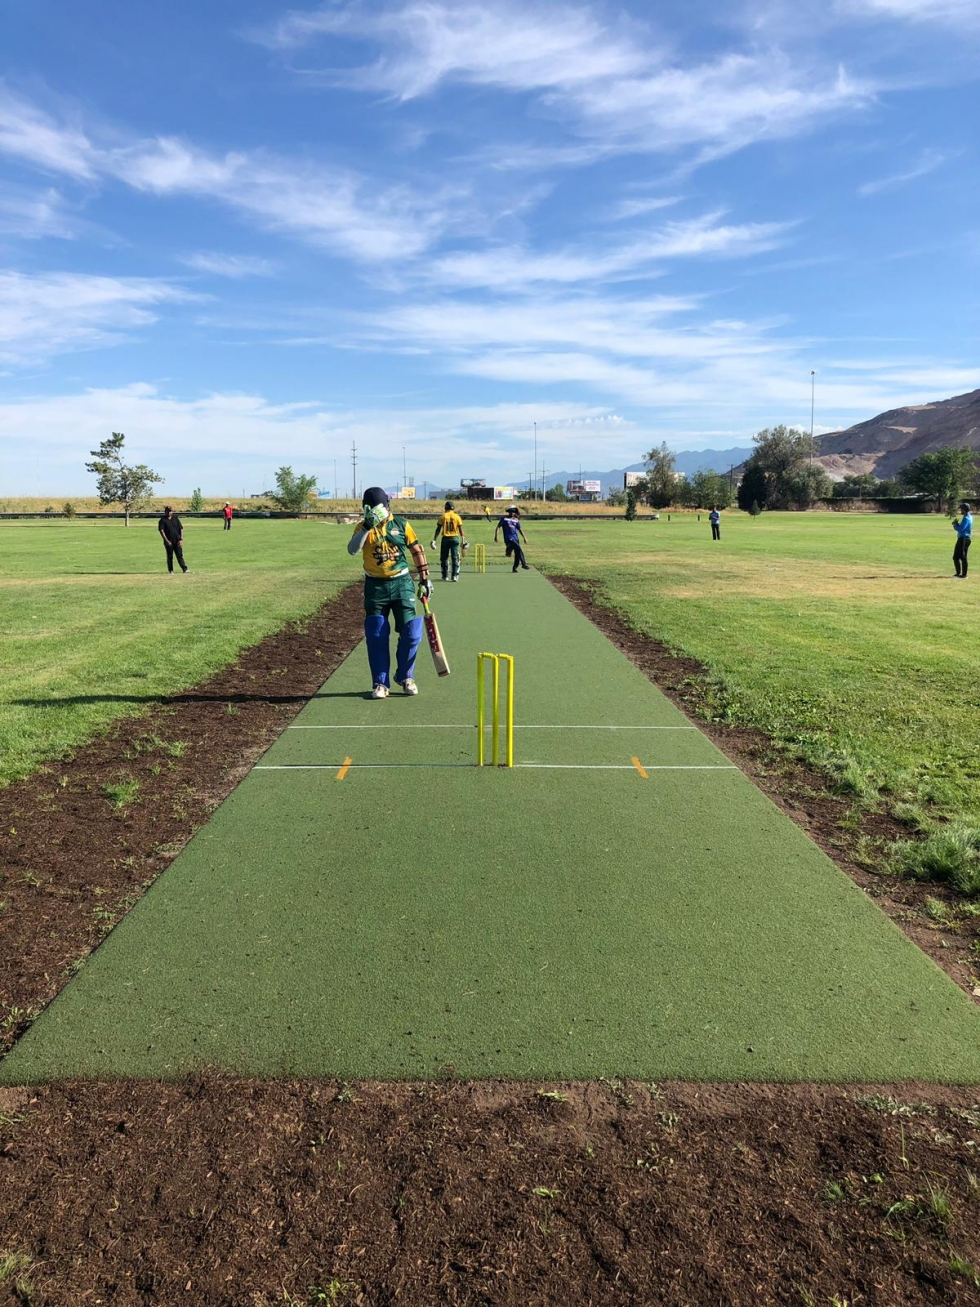 Local cricket teams, Utah Lions v. Salt Lake Knights, take advantage of the new cricket pitch at Rosewood Park last August.  Photo by Fahad Rana